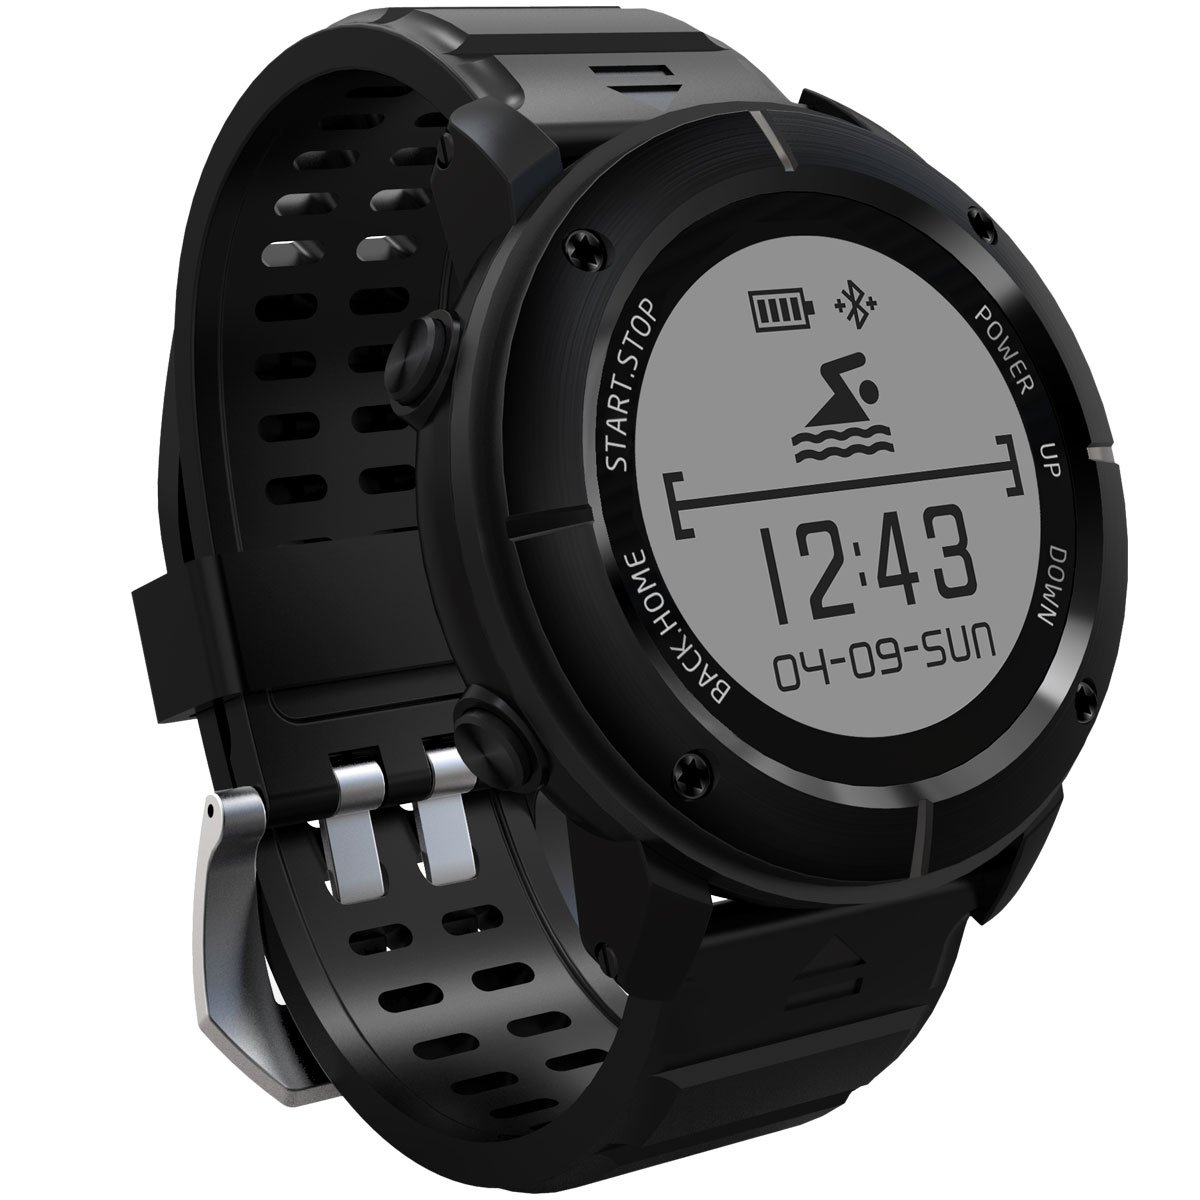 GPS Smartwatch, 11 Sports Modes Waterproof Smart Watch with SOS Heart Rate Monitor Compass Barometer Stopwatch Pedometer for Hiking Running Swimming etc., Support IOS iPhone & Android Cellphones by HopCentury